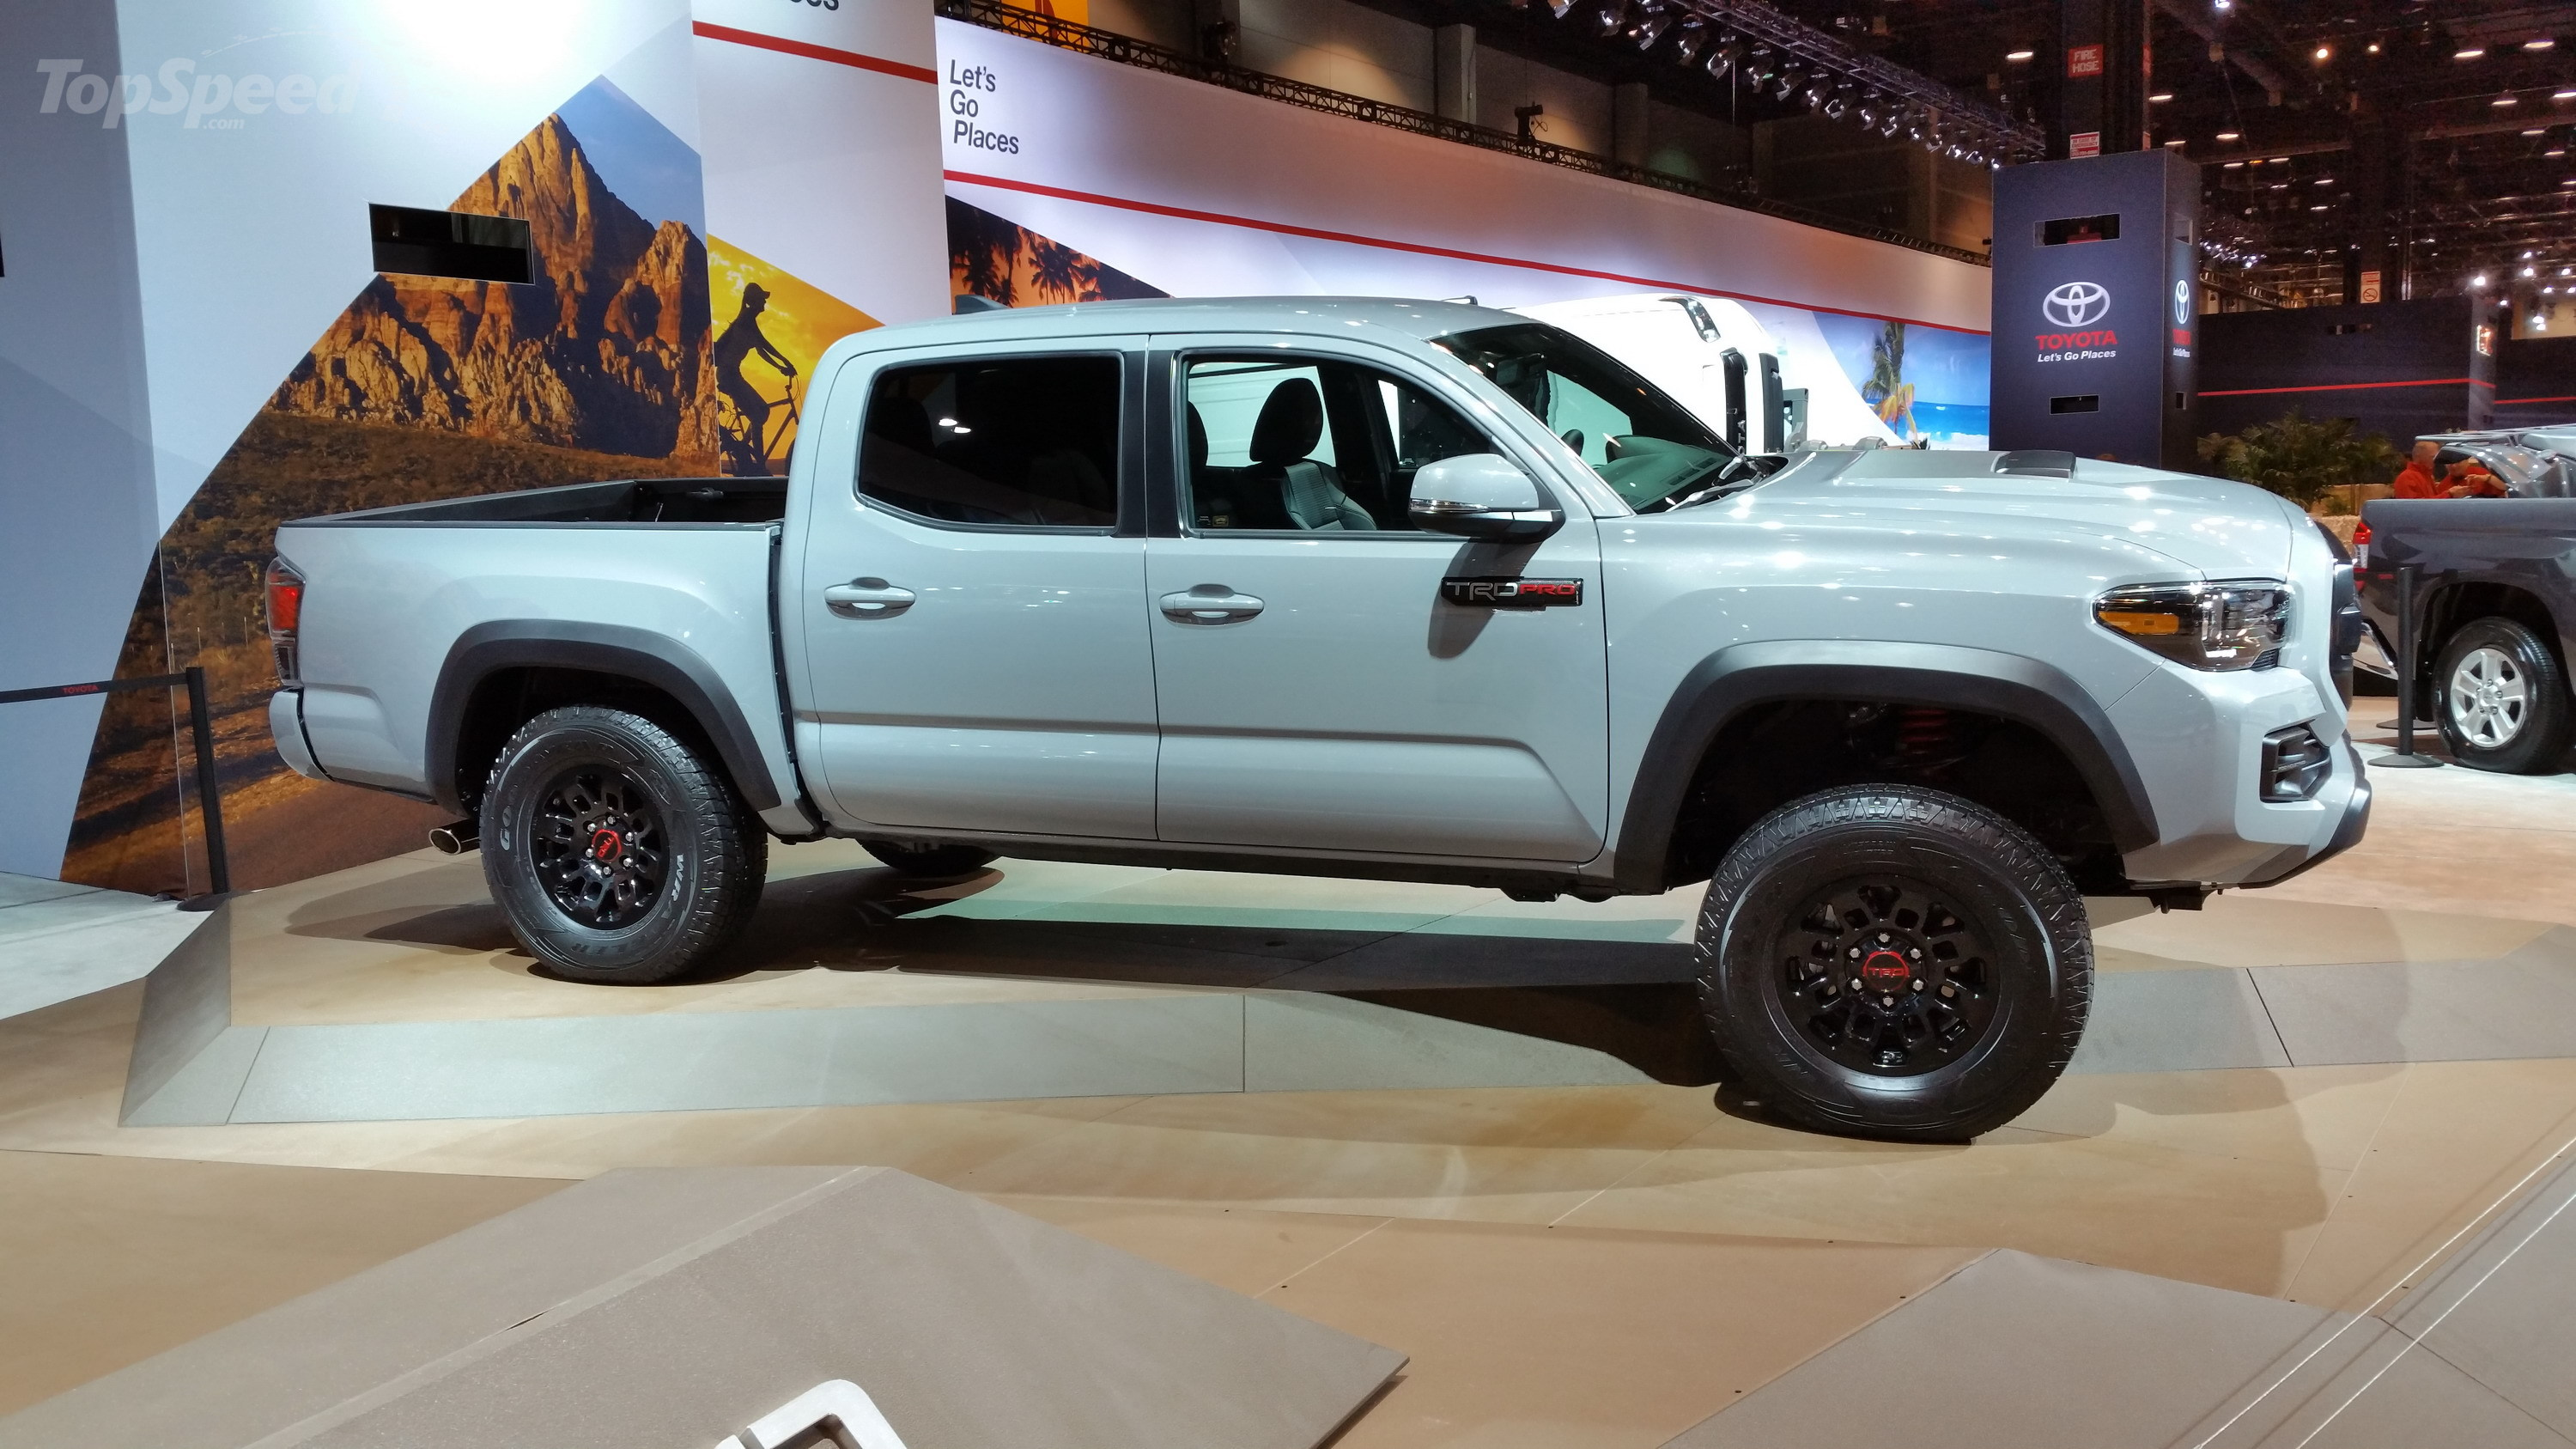 2017 toyota tacoma trd pro picture 666066 truck review. Black Bedroom Furniture Sets. Home Design Ideas